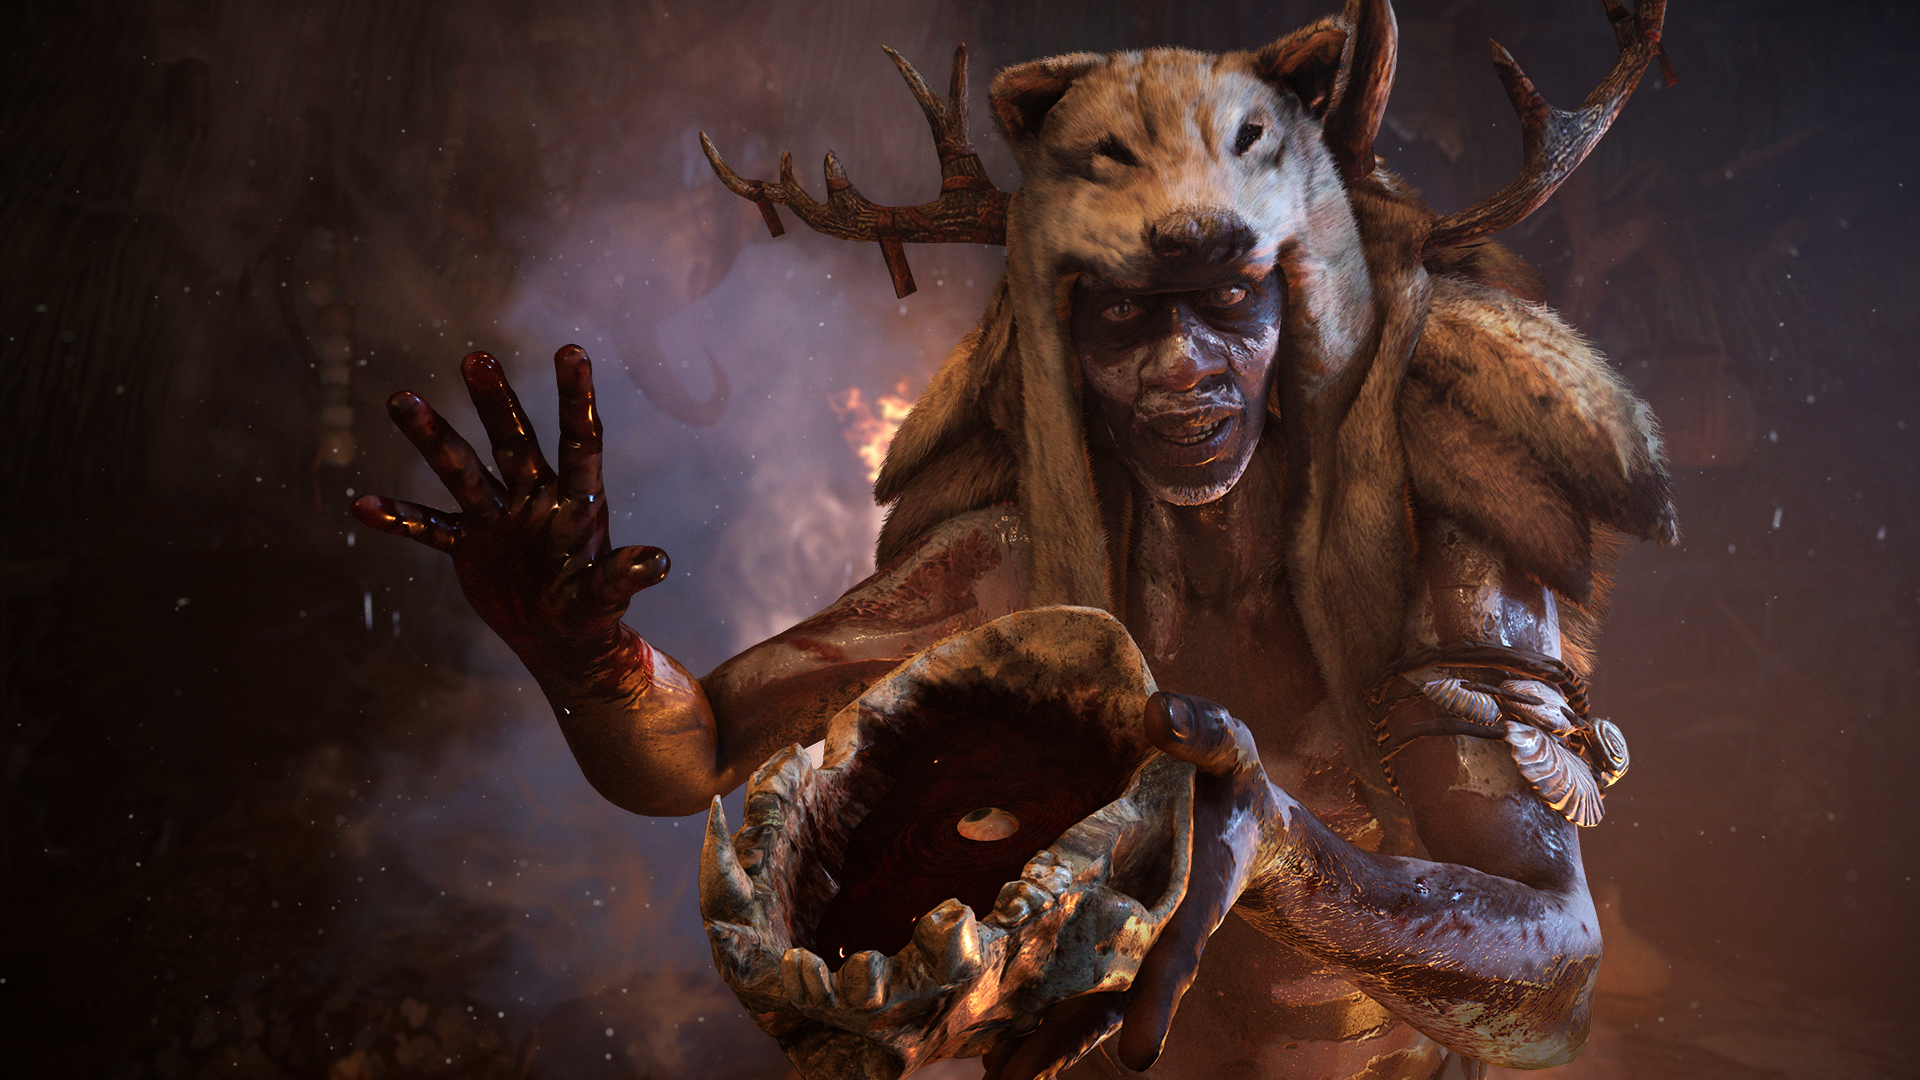 Far Cry Primal Gameplay Trailer Shows Weaponry To Wreak Havoc